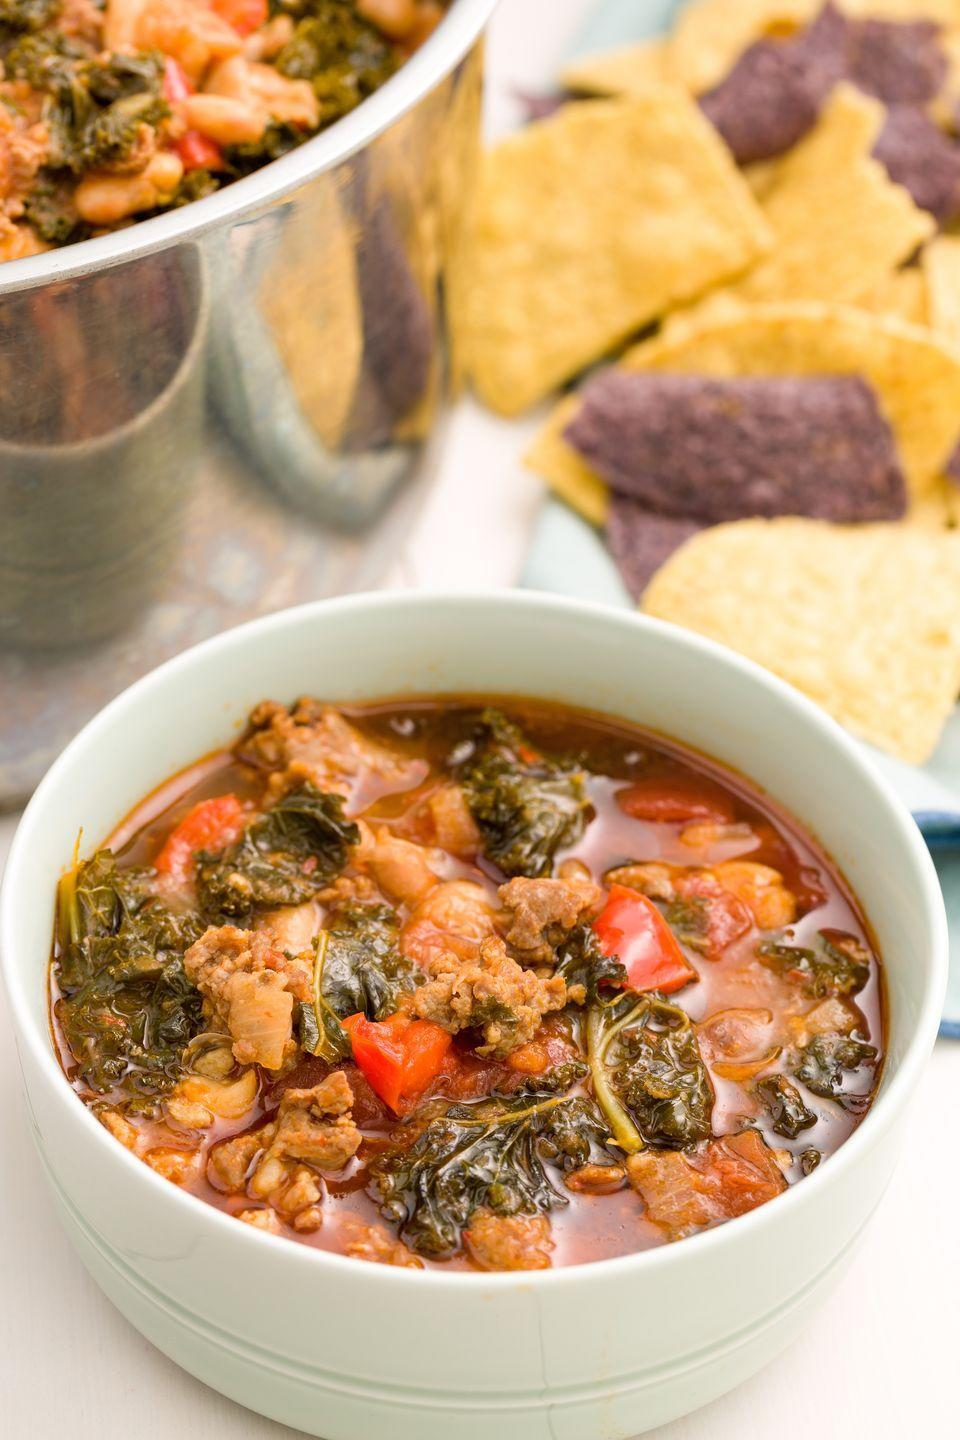 """<p>Swap ground beef for turkey and throw in some kale for a totally hearty, but still healthy, chili.</p><p>Get the recipe from <a href=""""https://www.delish.com/cooking/recipe-ideas/recipes/a45520/spicy-turkey-sausage-kale-chili-recipe/"""" rel=""""nofollow noopener"""" target=""""_blank"""" data-ylk=""""slk:Delish"""" class=""""link rapid-noclick-resp"""">Delish</a>.</p>"""